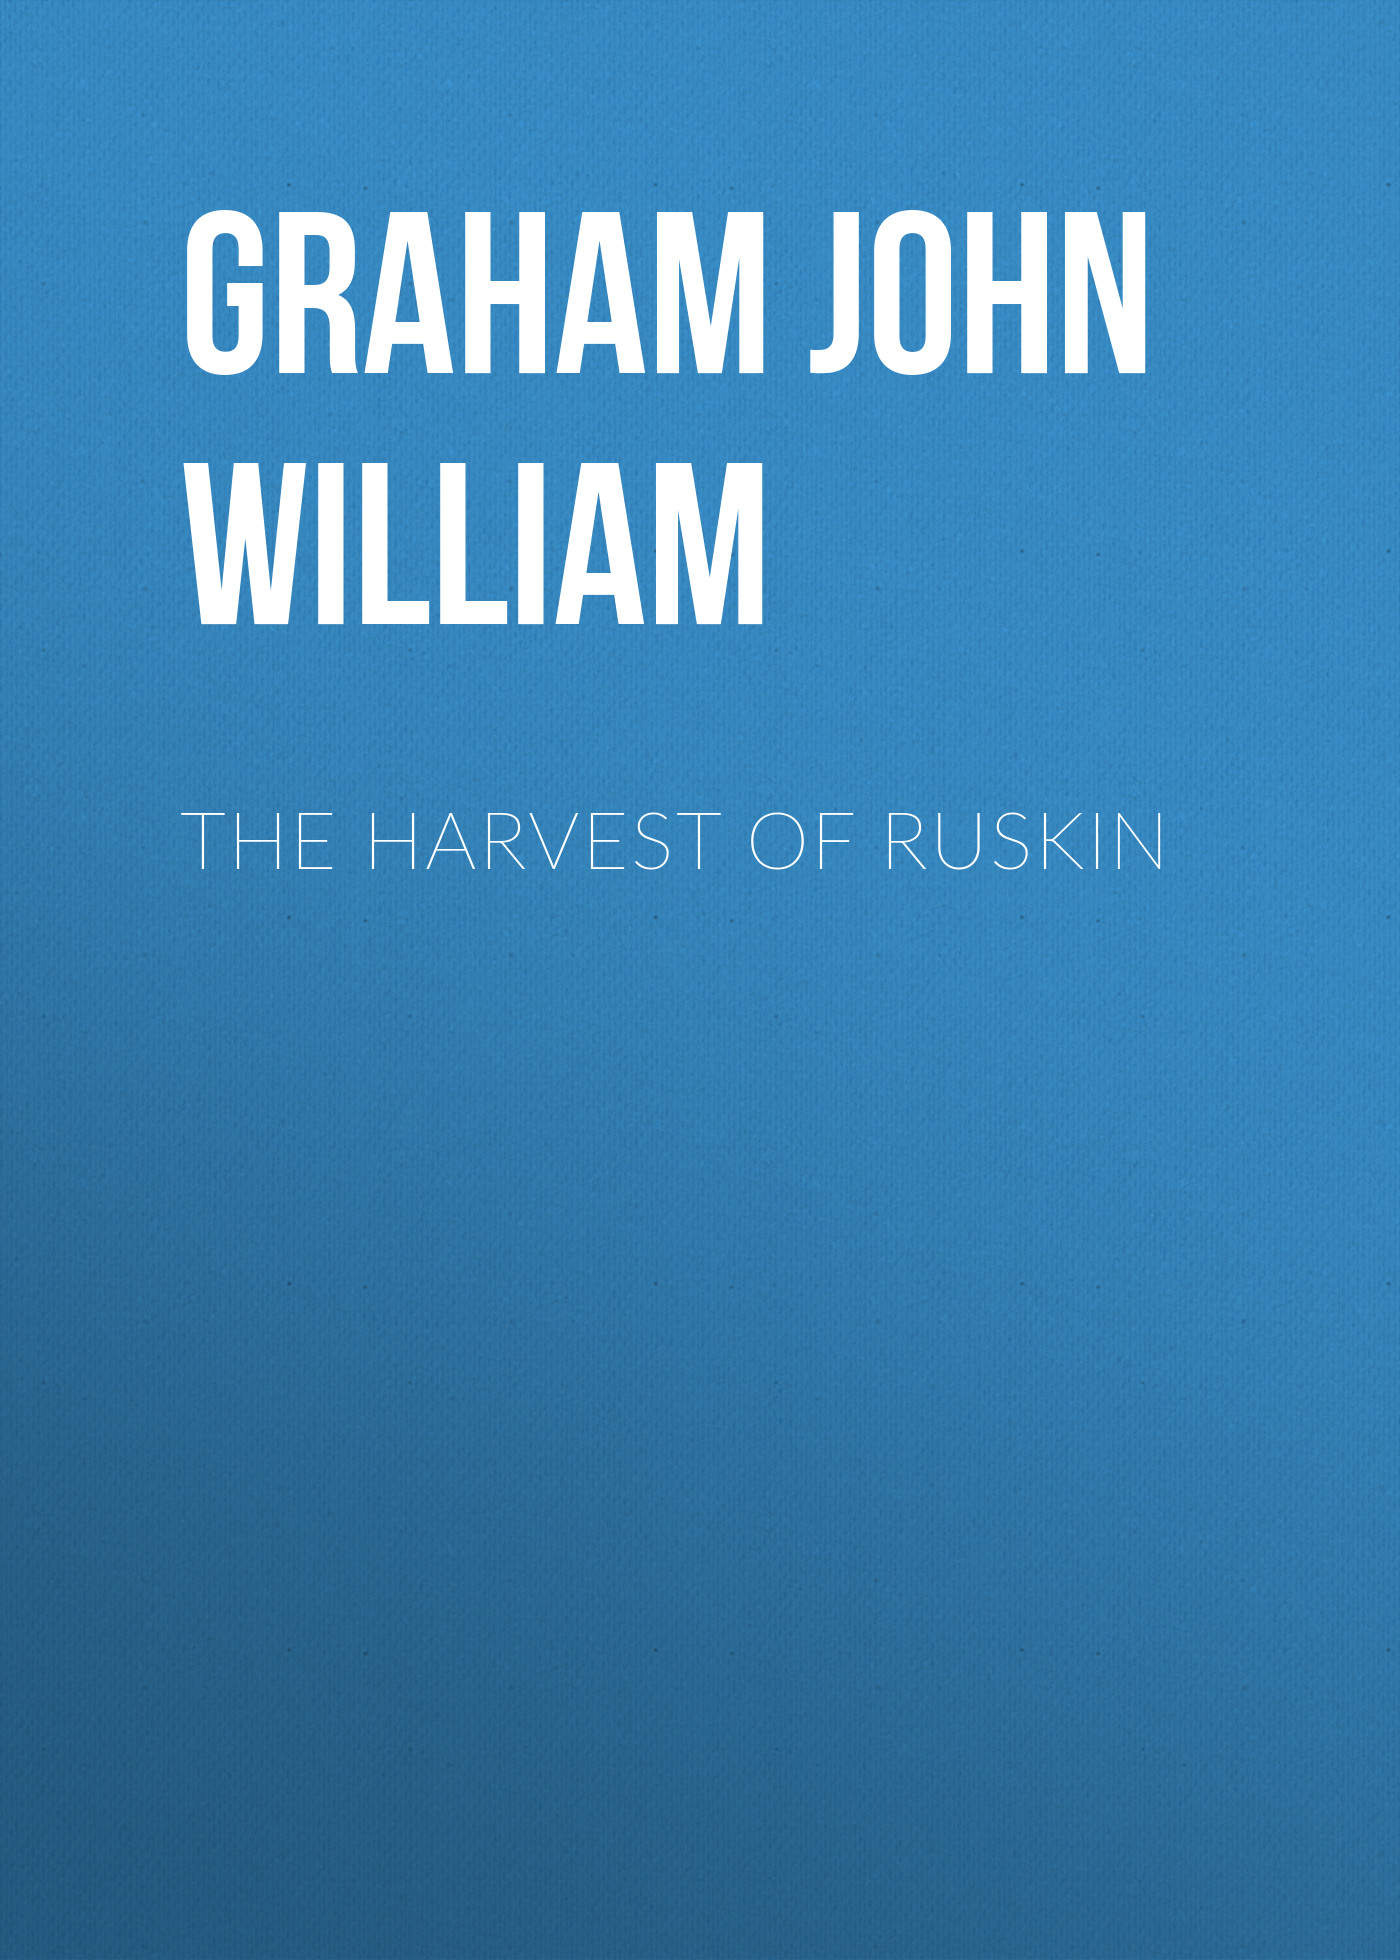 Graham John William The Harvest of Ruskin bower john graham on patrol